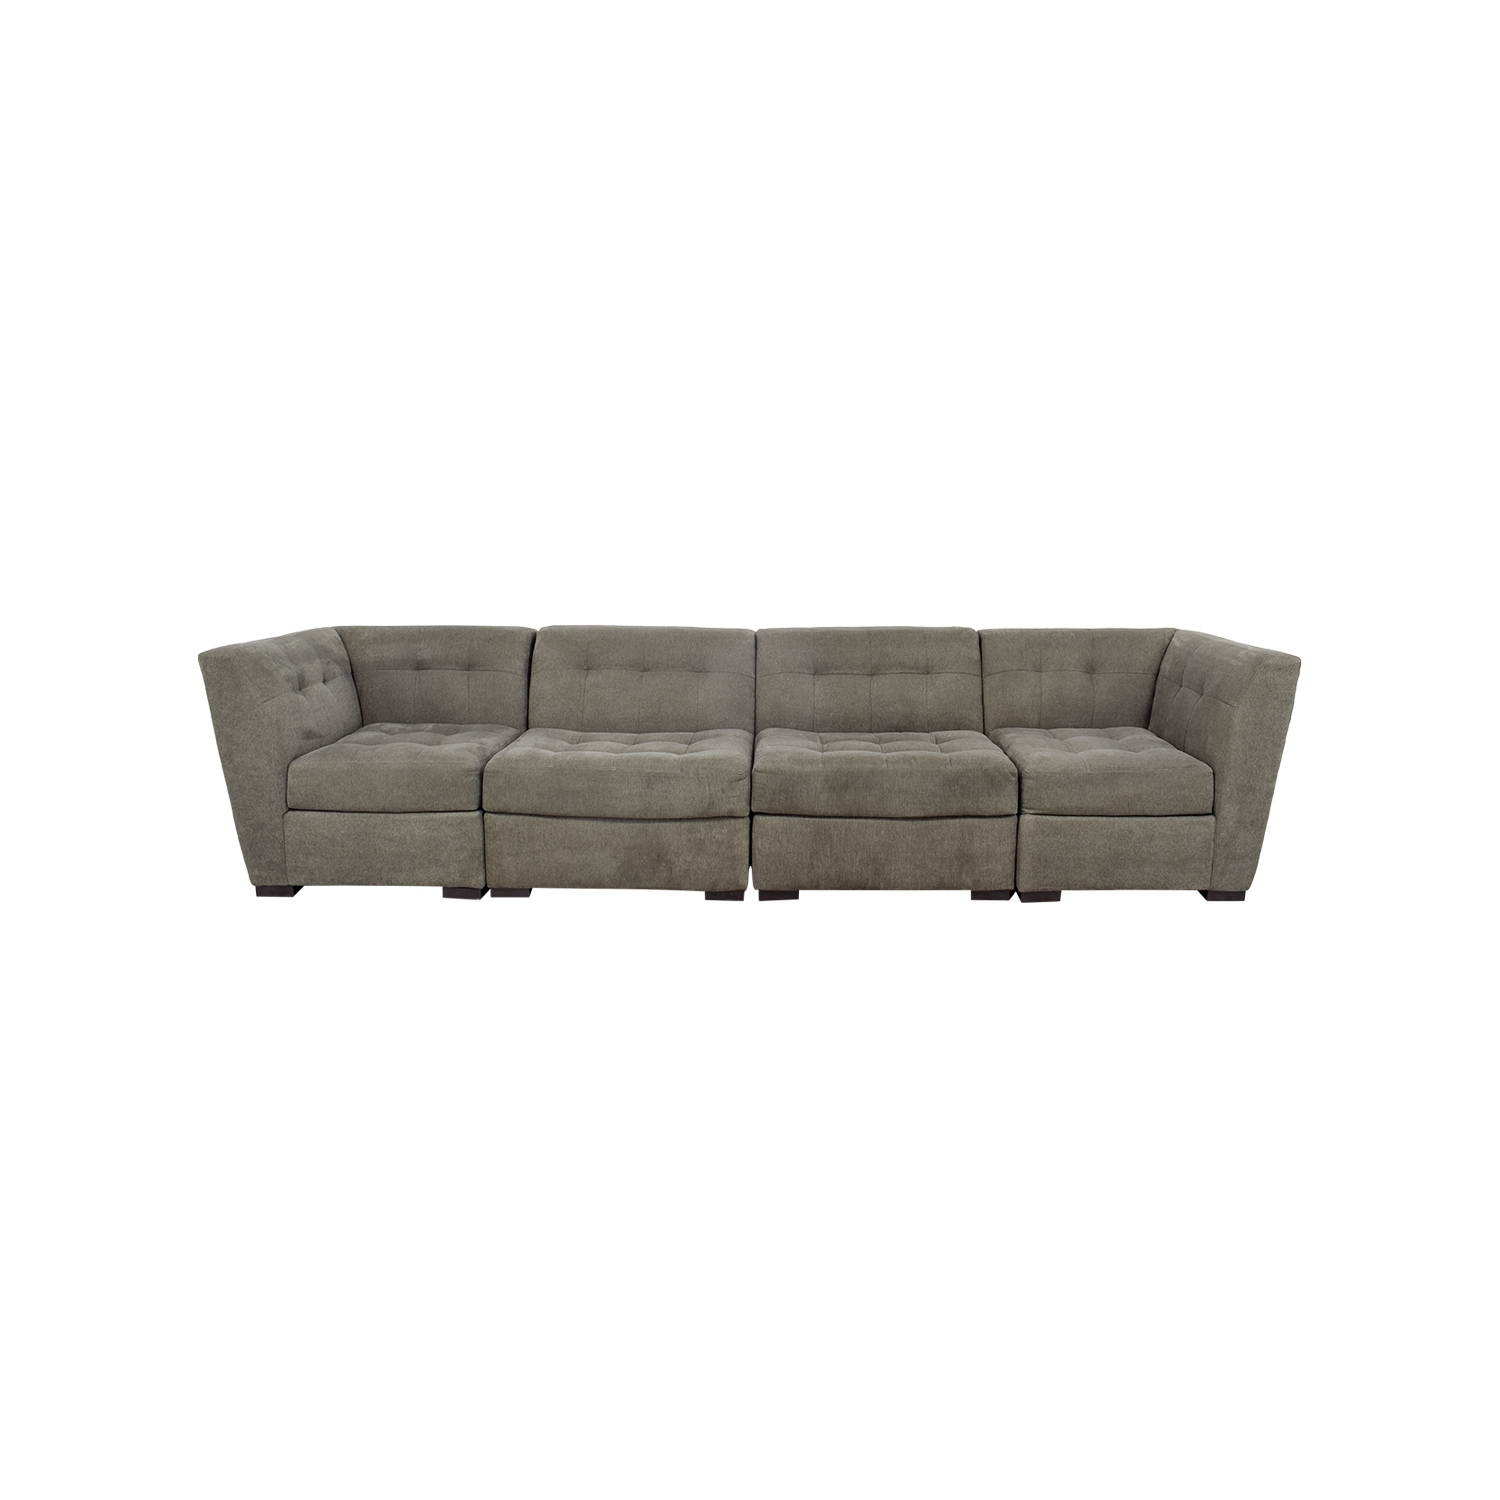 [%63% Off – Macy's Macy's Roxanne Modular Sectional Sofa / Sofas Throughout Well Known Macys Leather Sectional Sofas|macys Leather Sectional Sofas Inside Well Liked 63% Off – Macy's Macy's Roxanne Modular Sectional Sofa / Sofas|most Up To Date Macys Leather Sectional Sofas Inside 63% Off – Macy's Macy's Roxanne Modular Sectional Sofa / Sofas|most Current 63% Off – Macy's Macy's Roxanne Modular Sectional Sofa / Sofas Pertaining To Macys Leather Sectional Sofas%] (View 16 of 20)